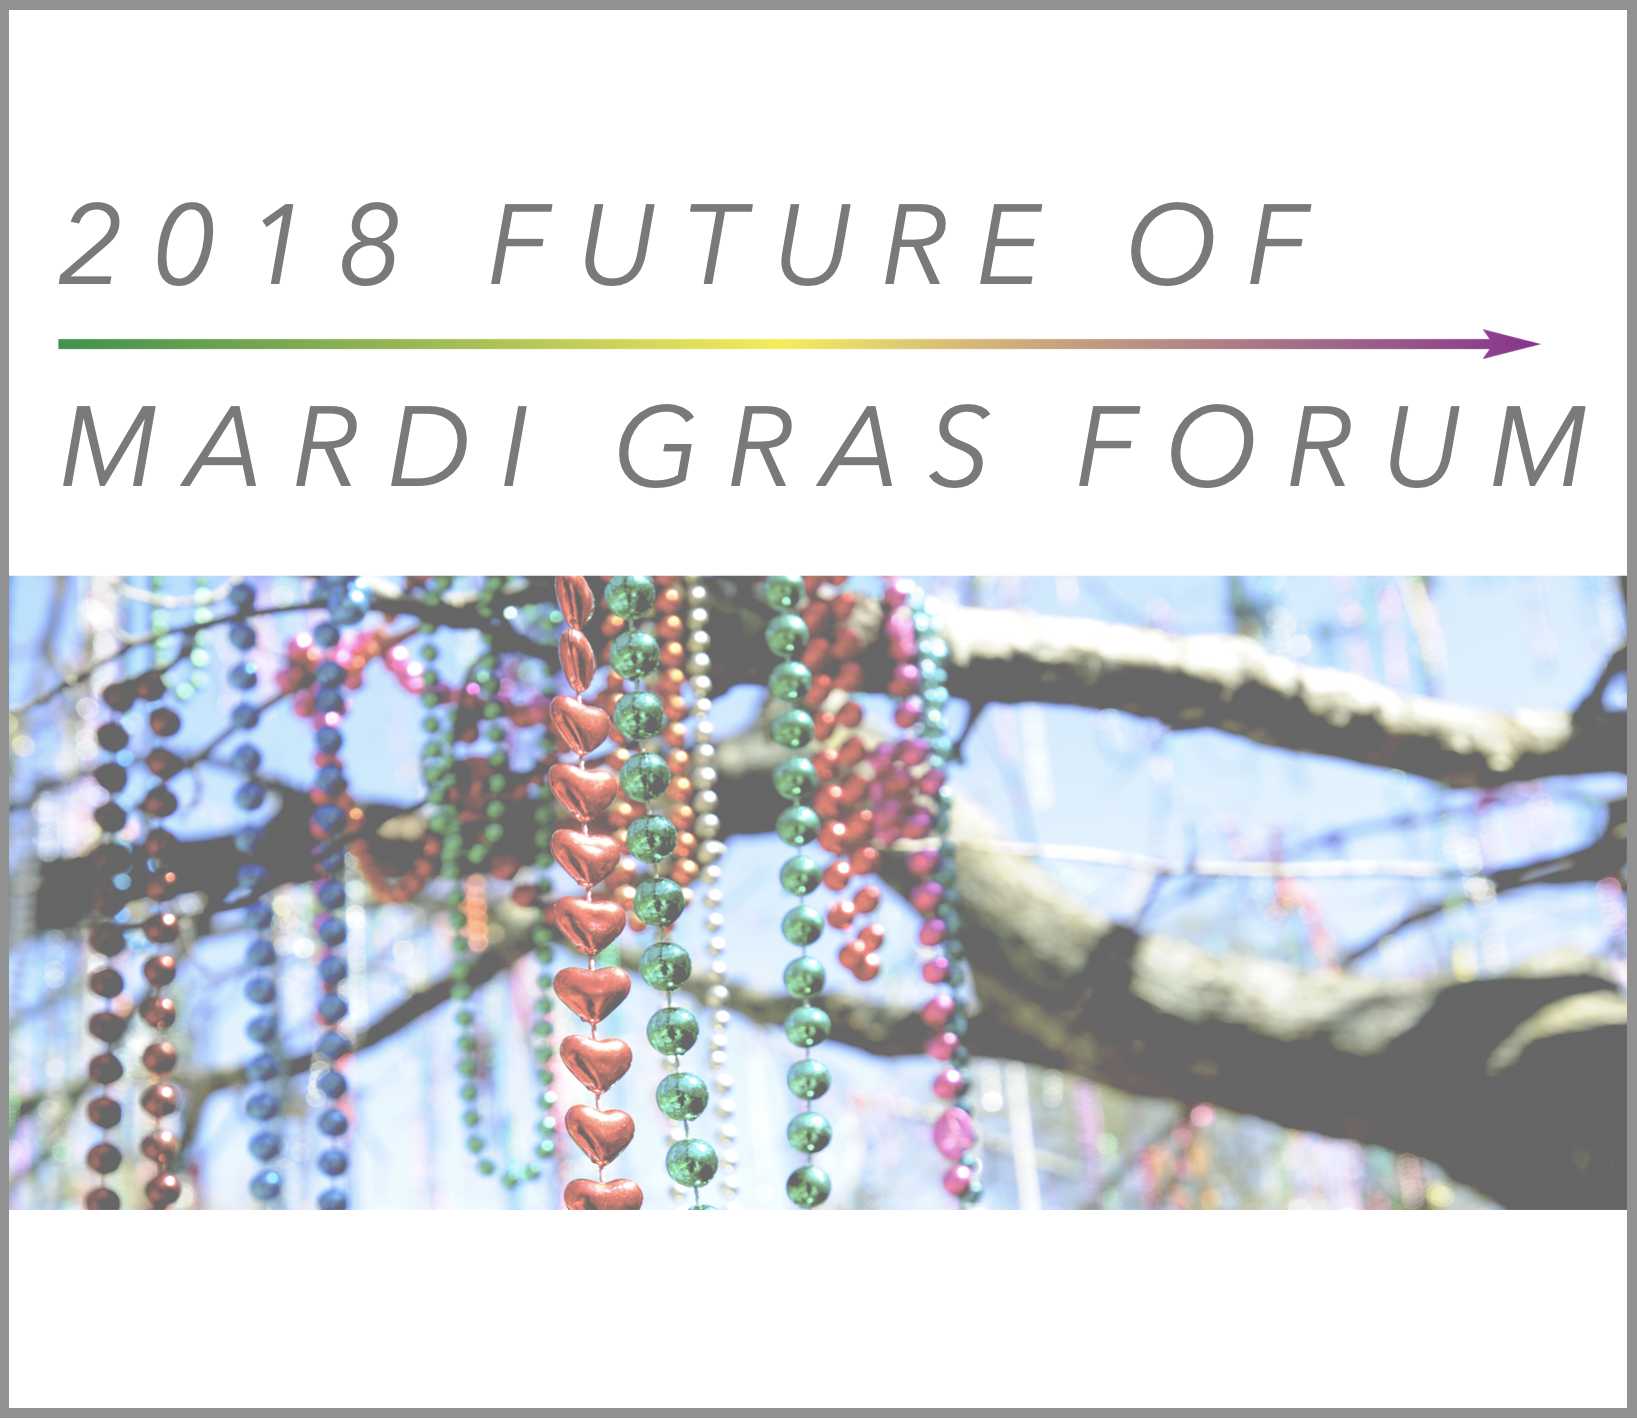 Future of Mardi Gras Forum Survey Results - Community members who attended the forum were asked to fill out a brief survey about their current participation in Mardi Gras and answer questions about civics, tradition, community, and waste.